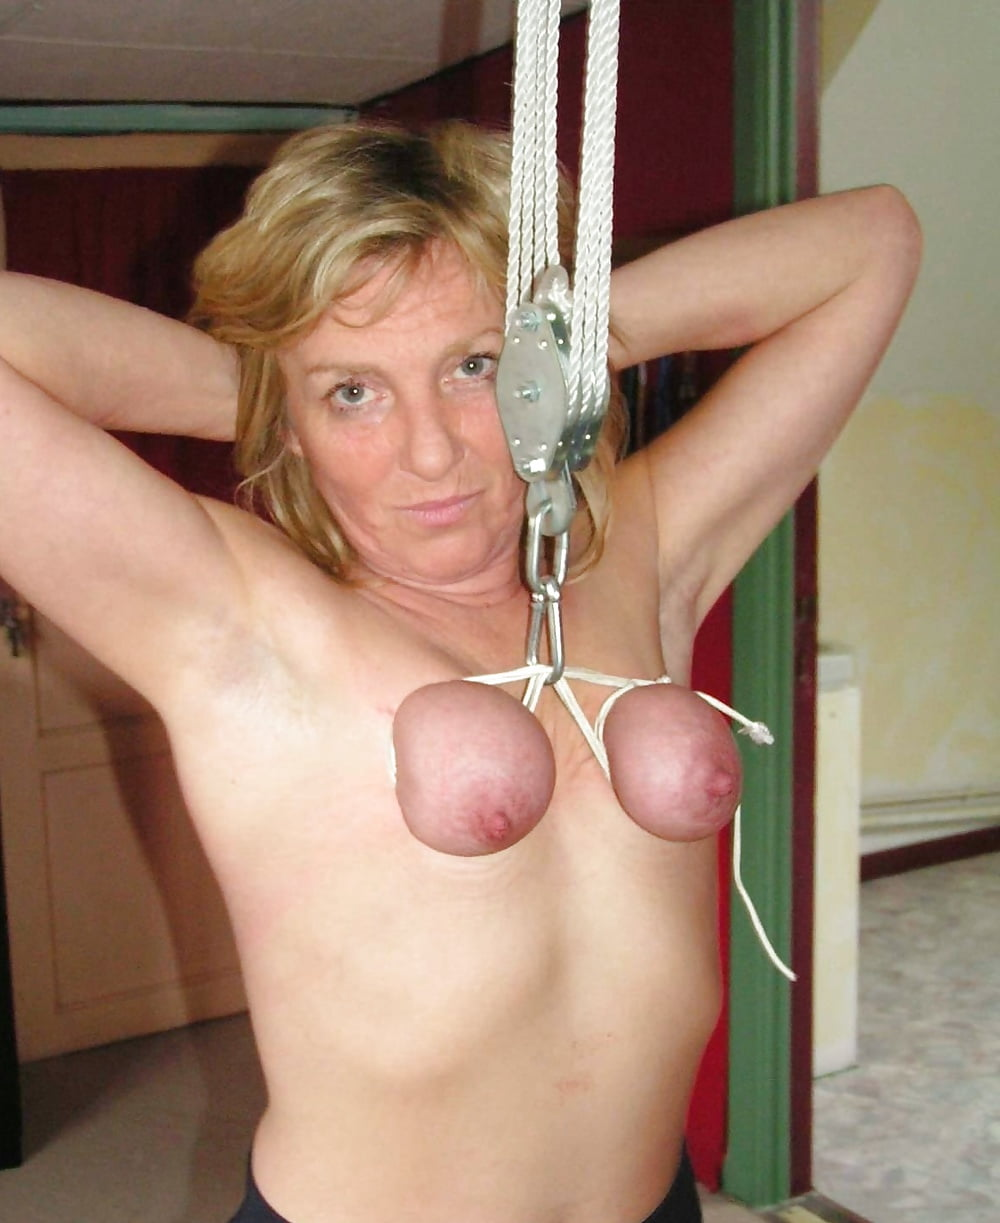 girls-with-hanging-breasts-free-galleries